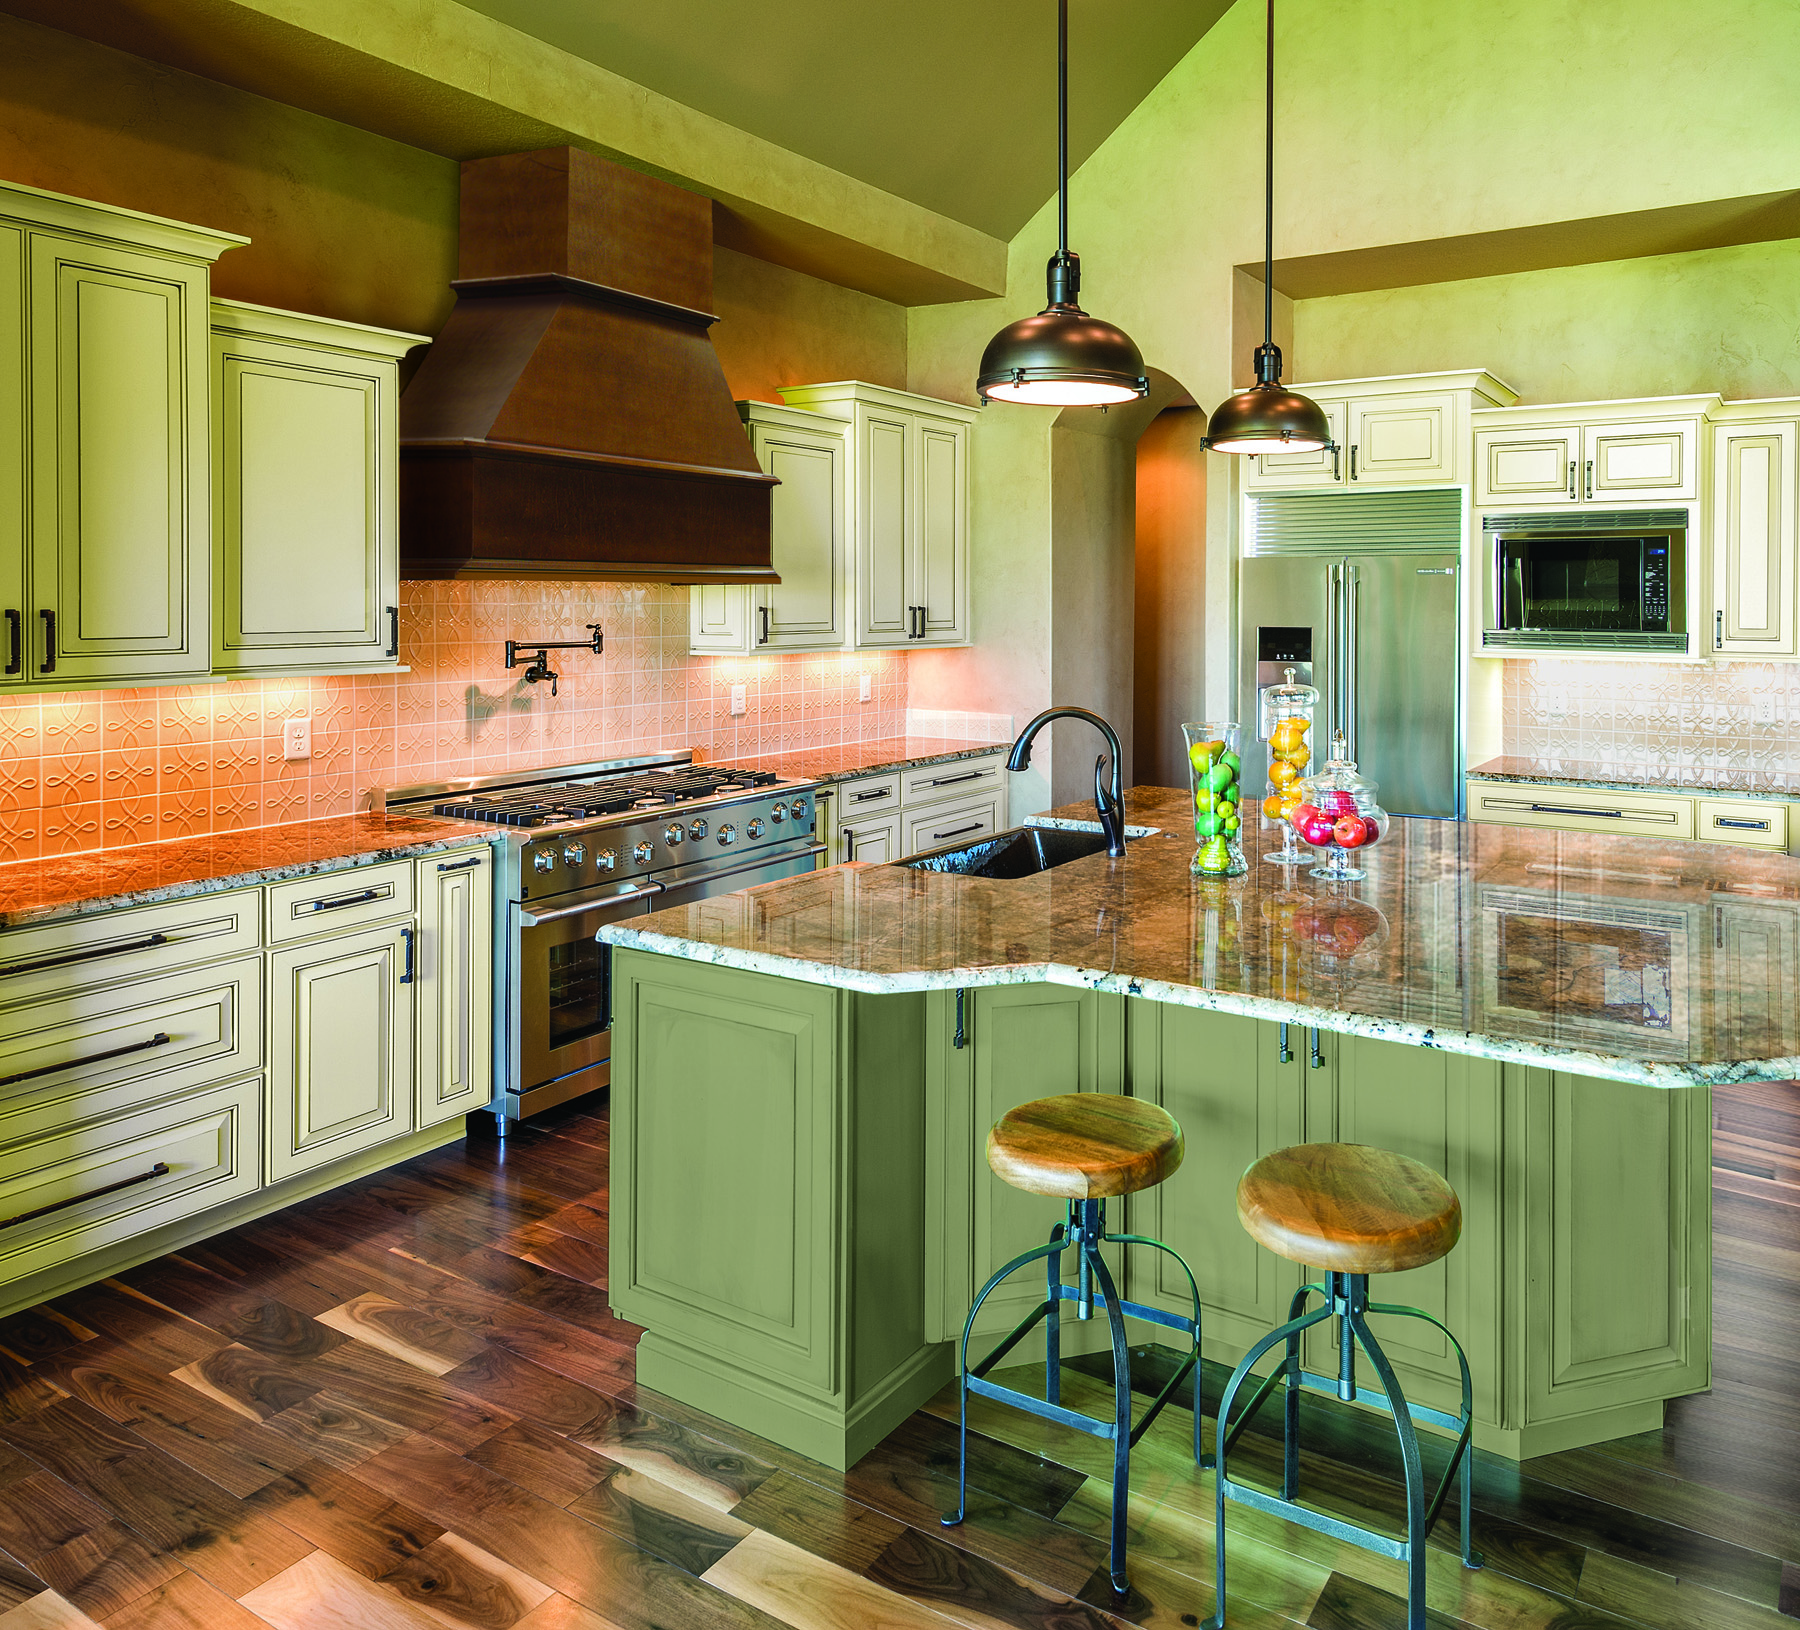 New Paint Colors Bring HighFashion Home to Kitchen